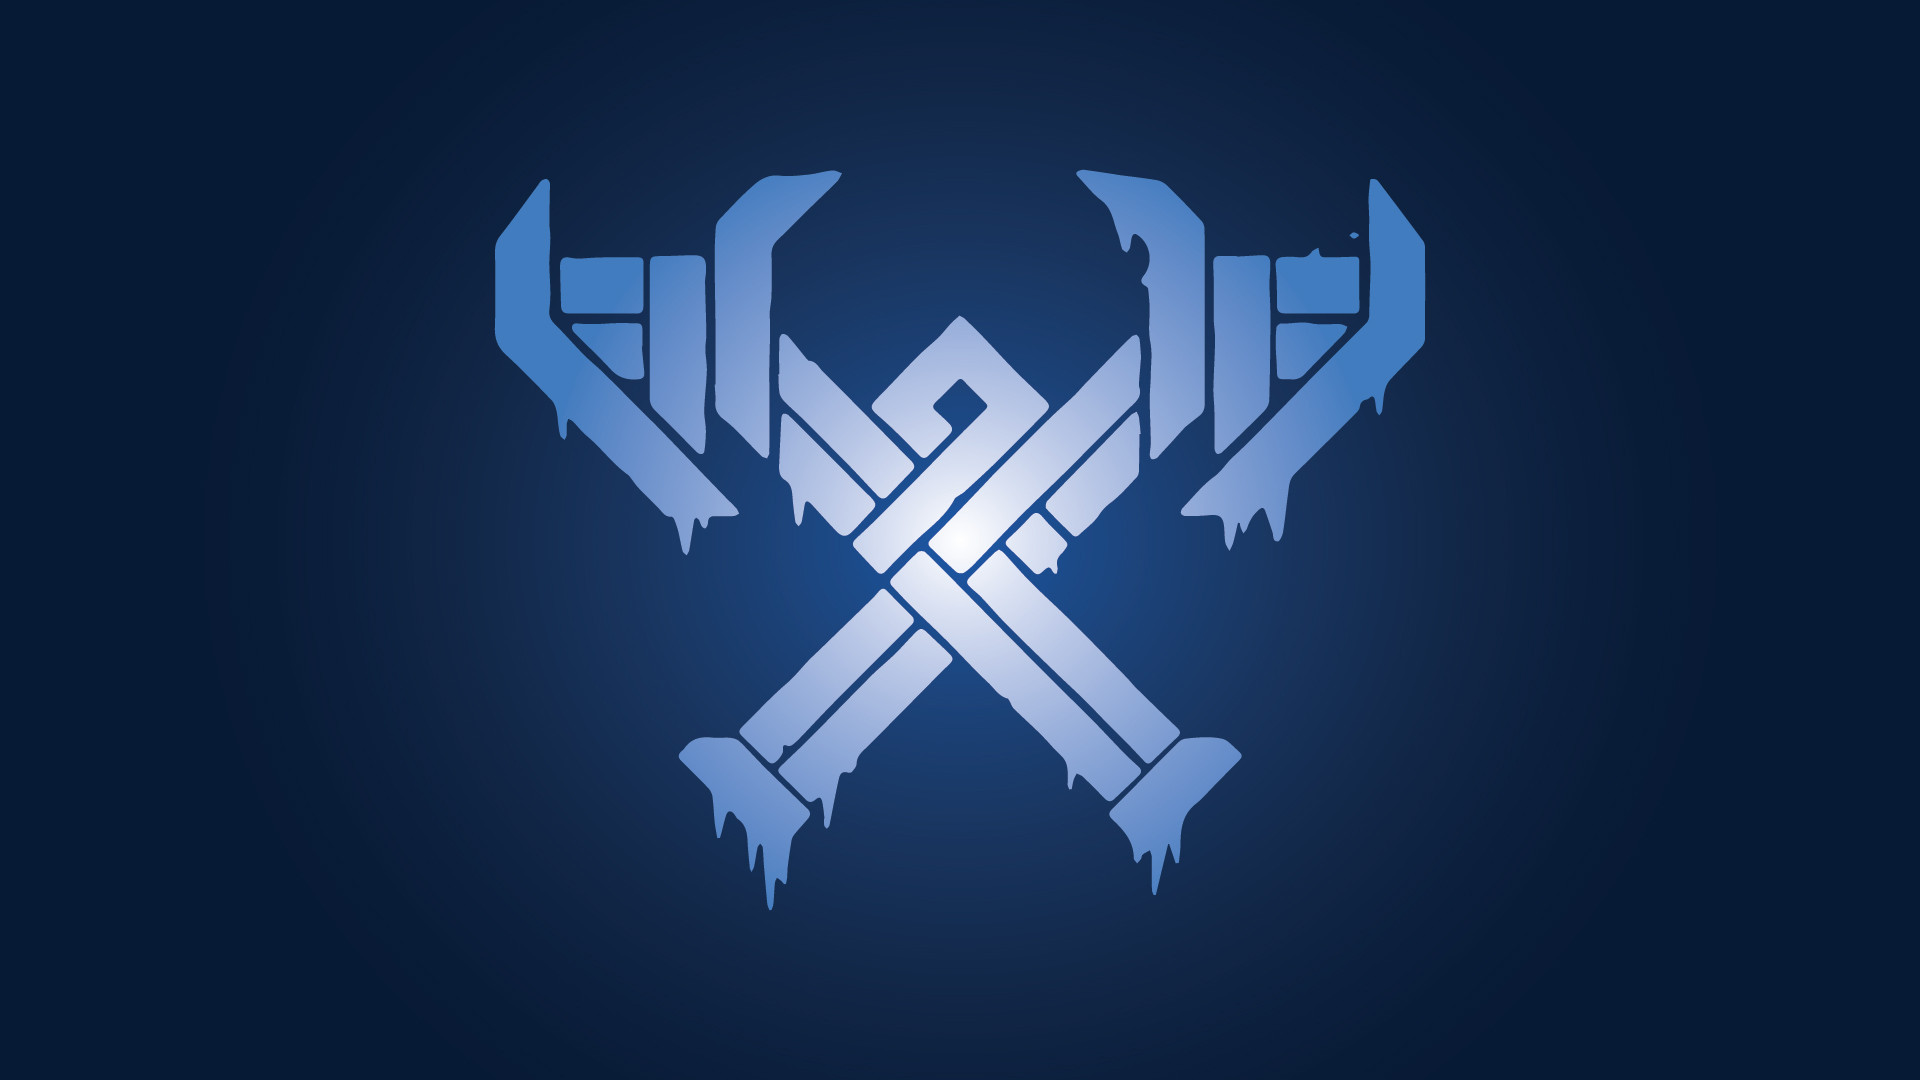 Freljord Winter's Claw wallpaper